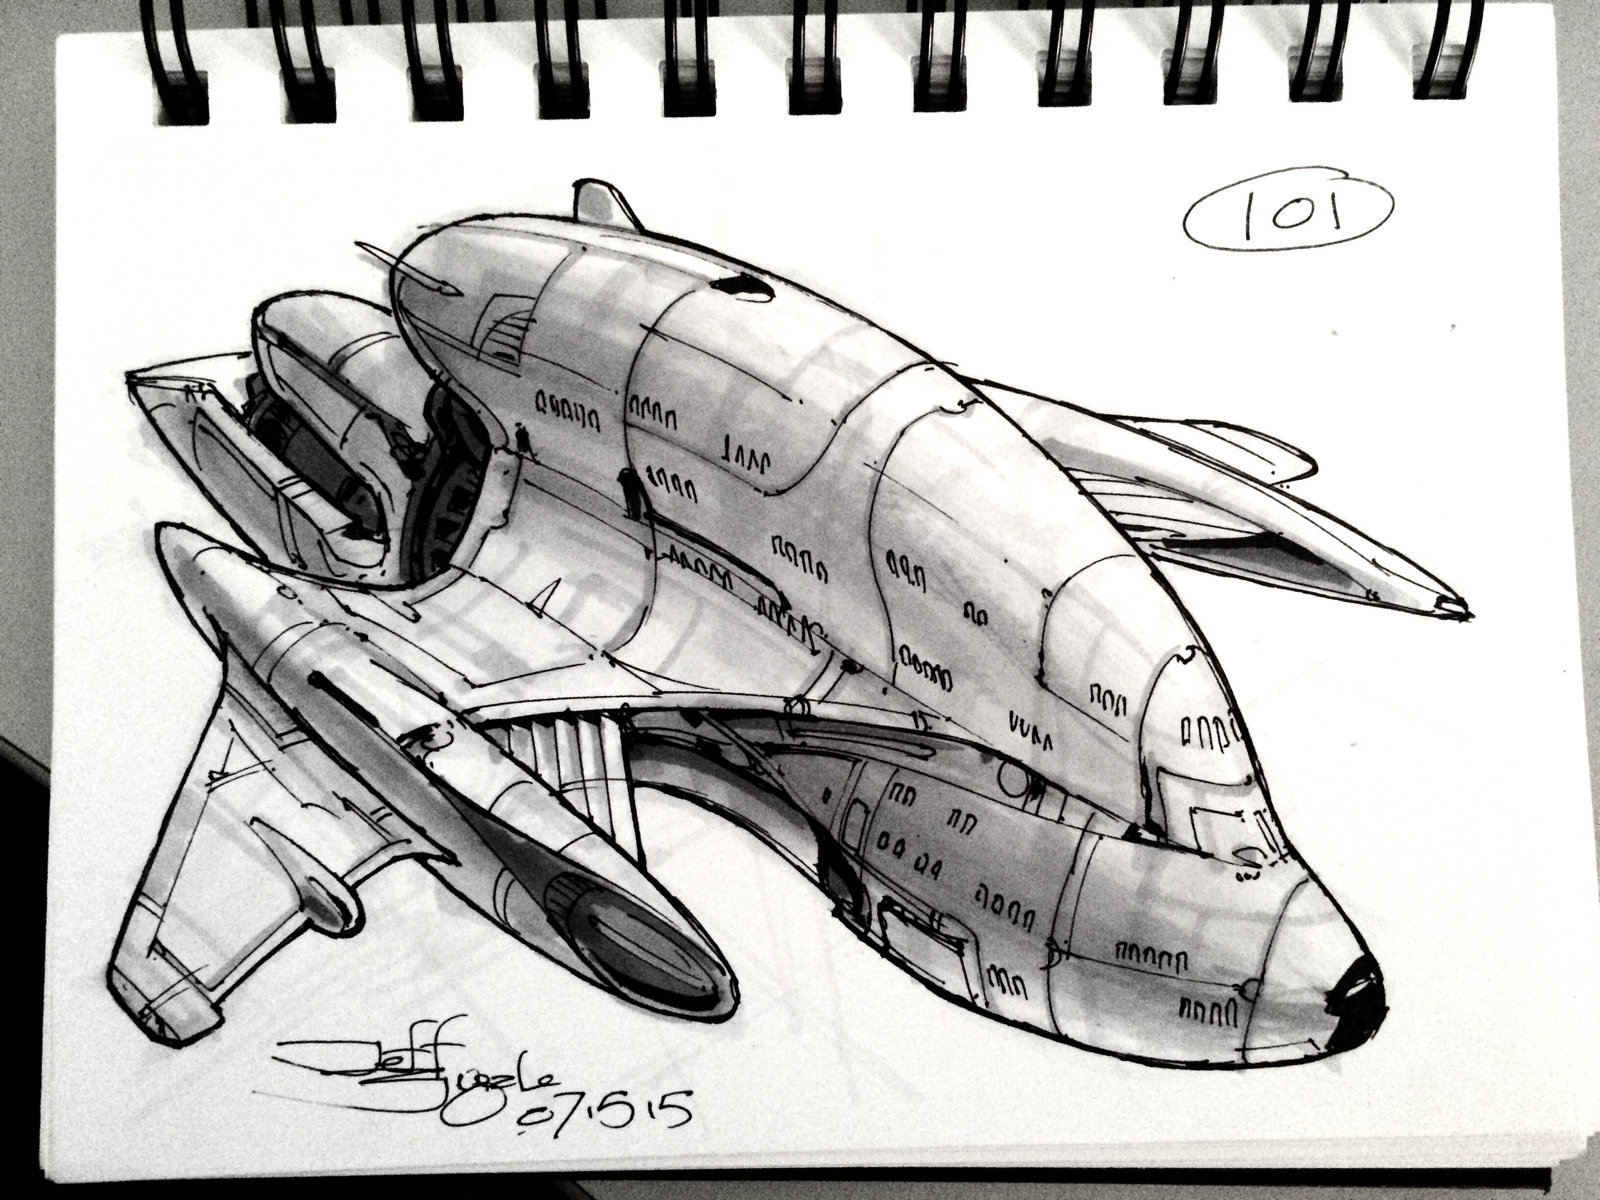 SpaceshipADay 101